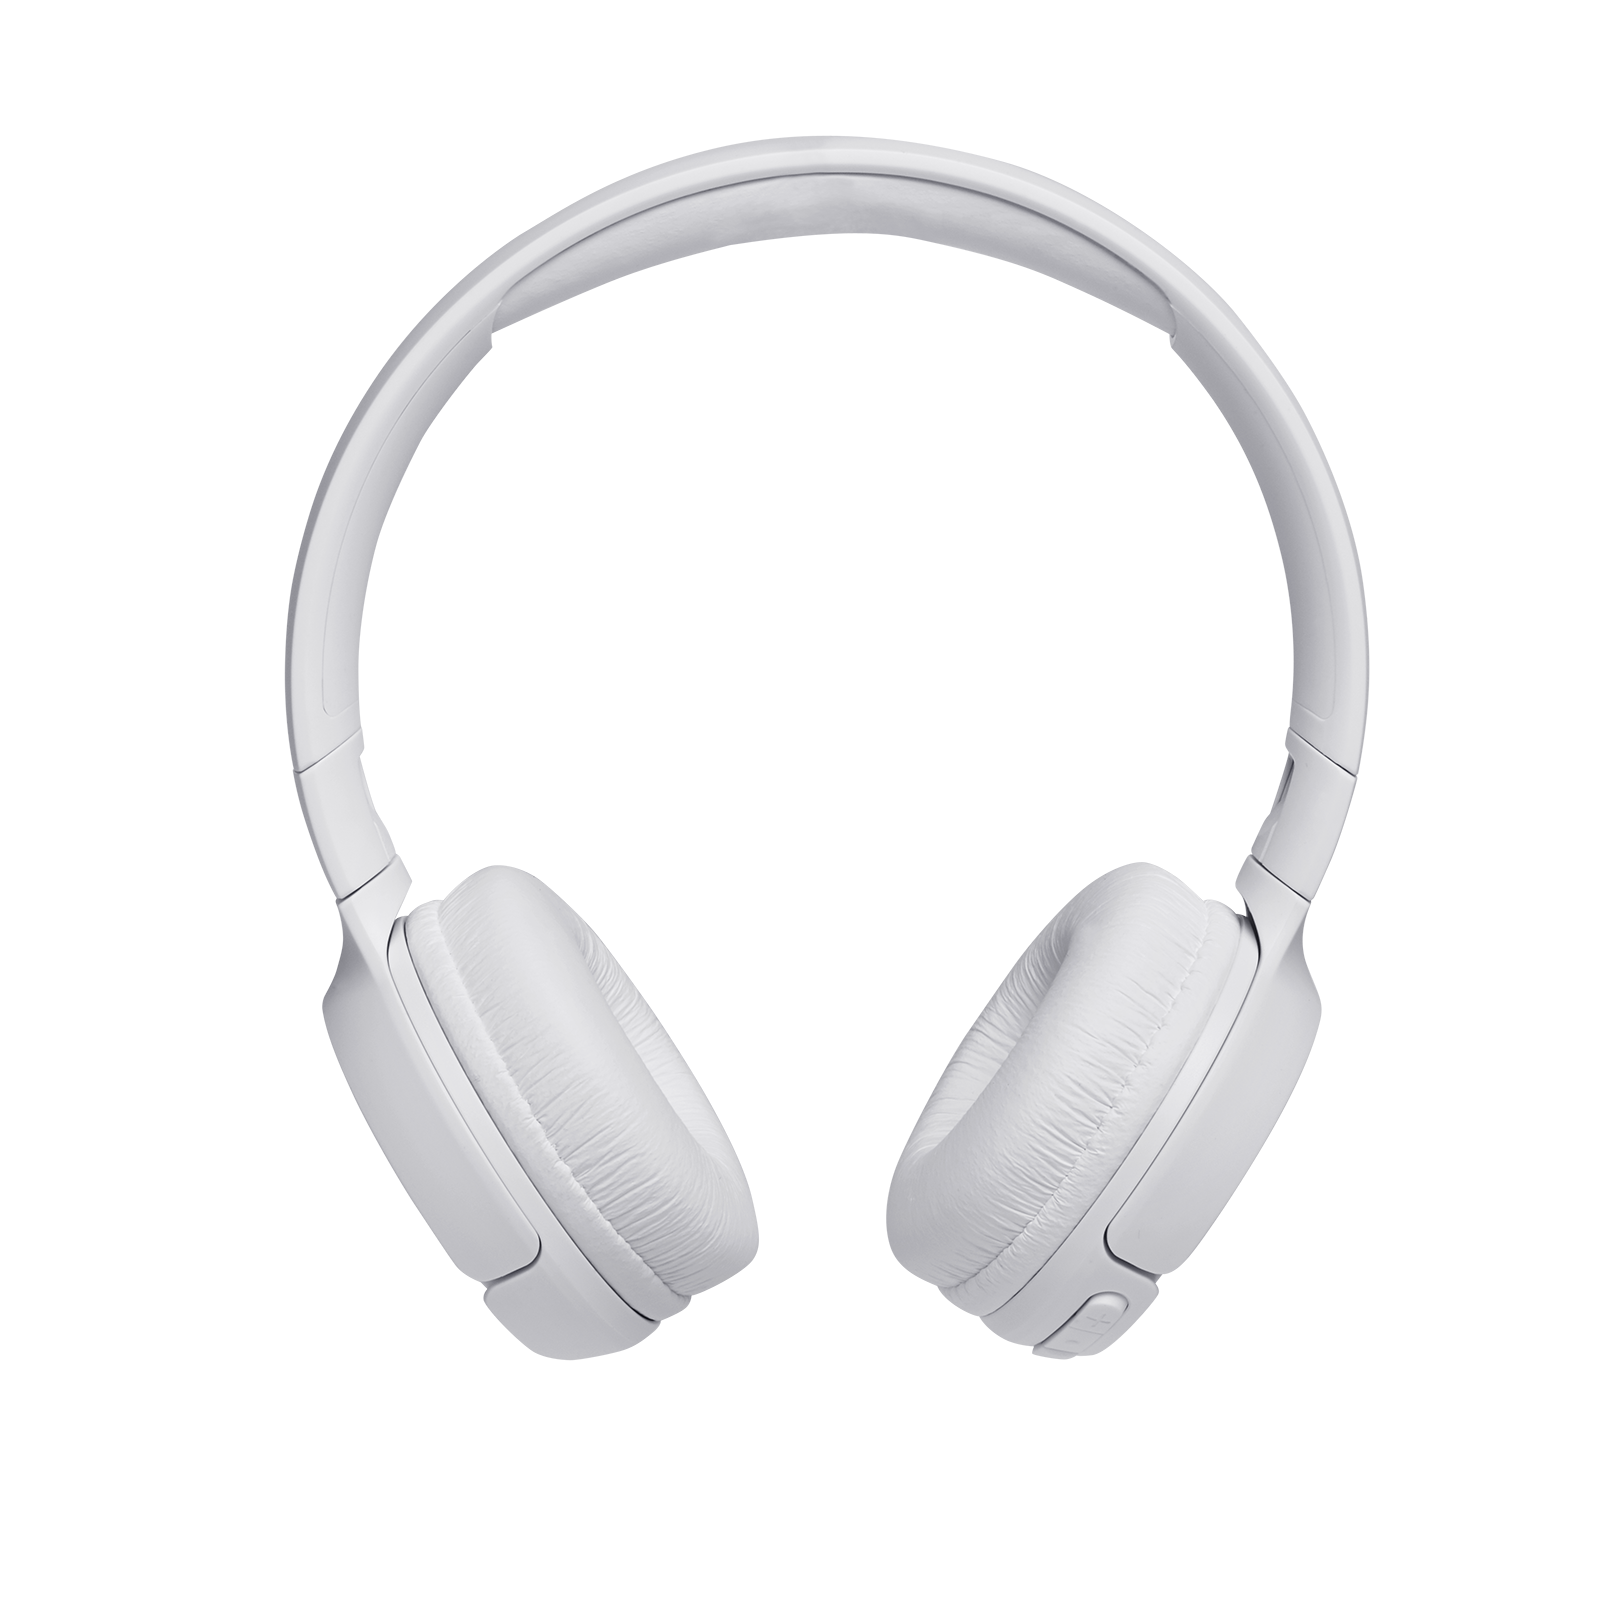 JBL TUNE 500BT - White - Wireless on-ear headphones - Front